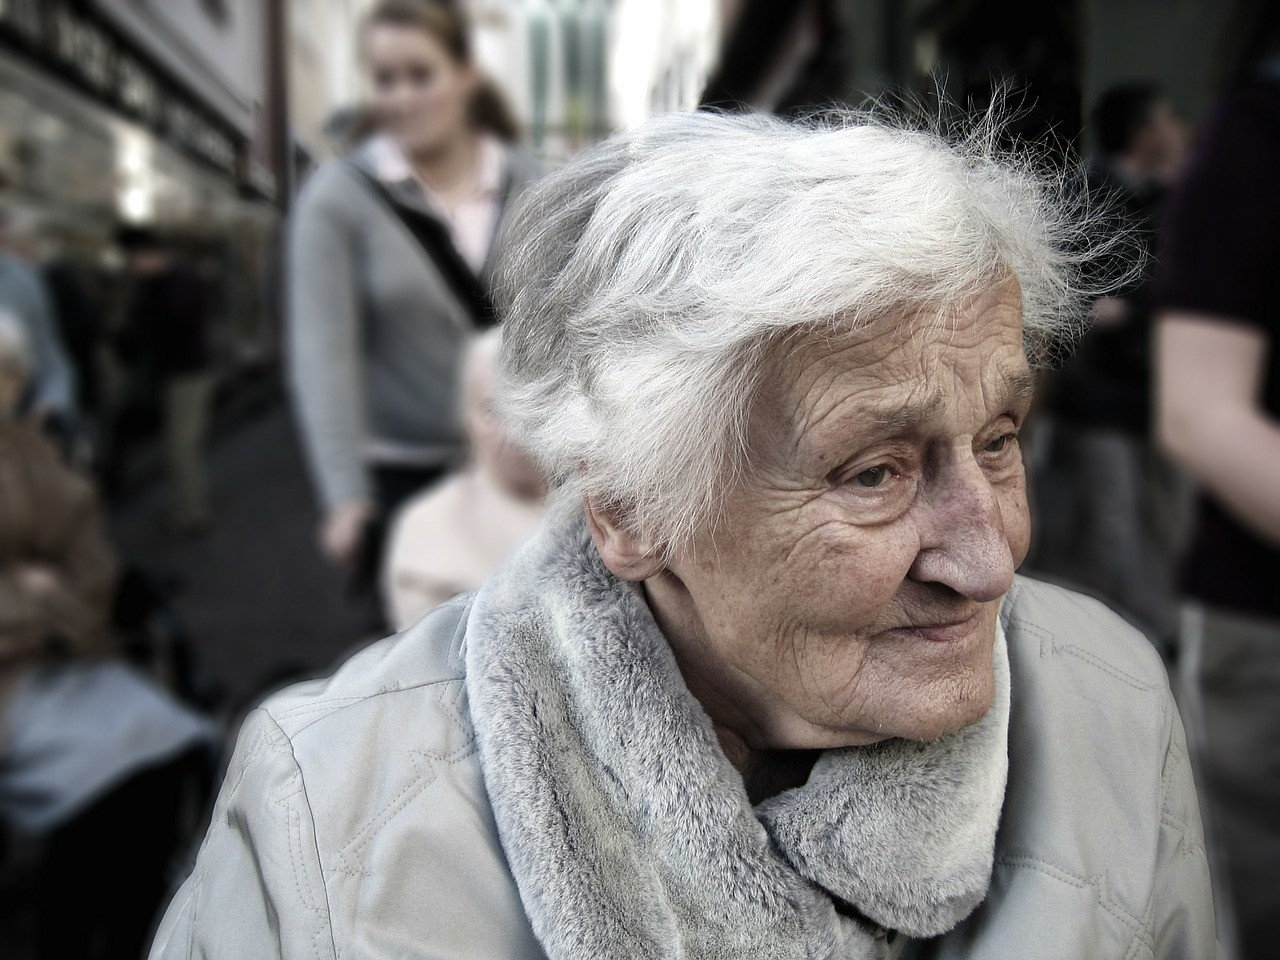 Discuss how seniors can combat health problems they may face